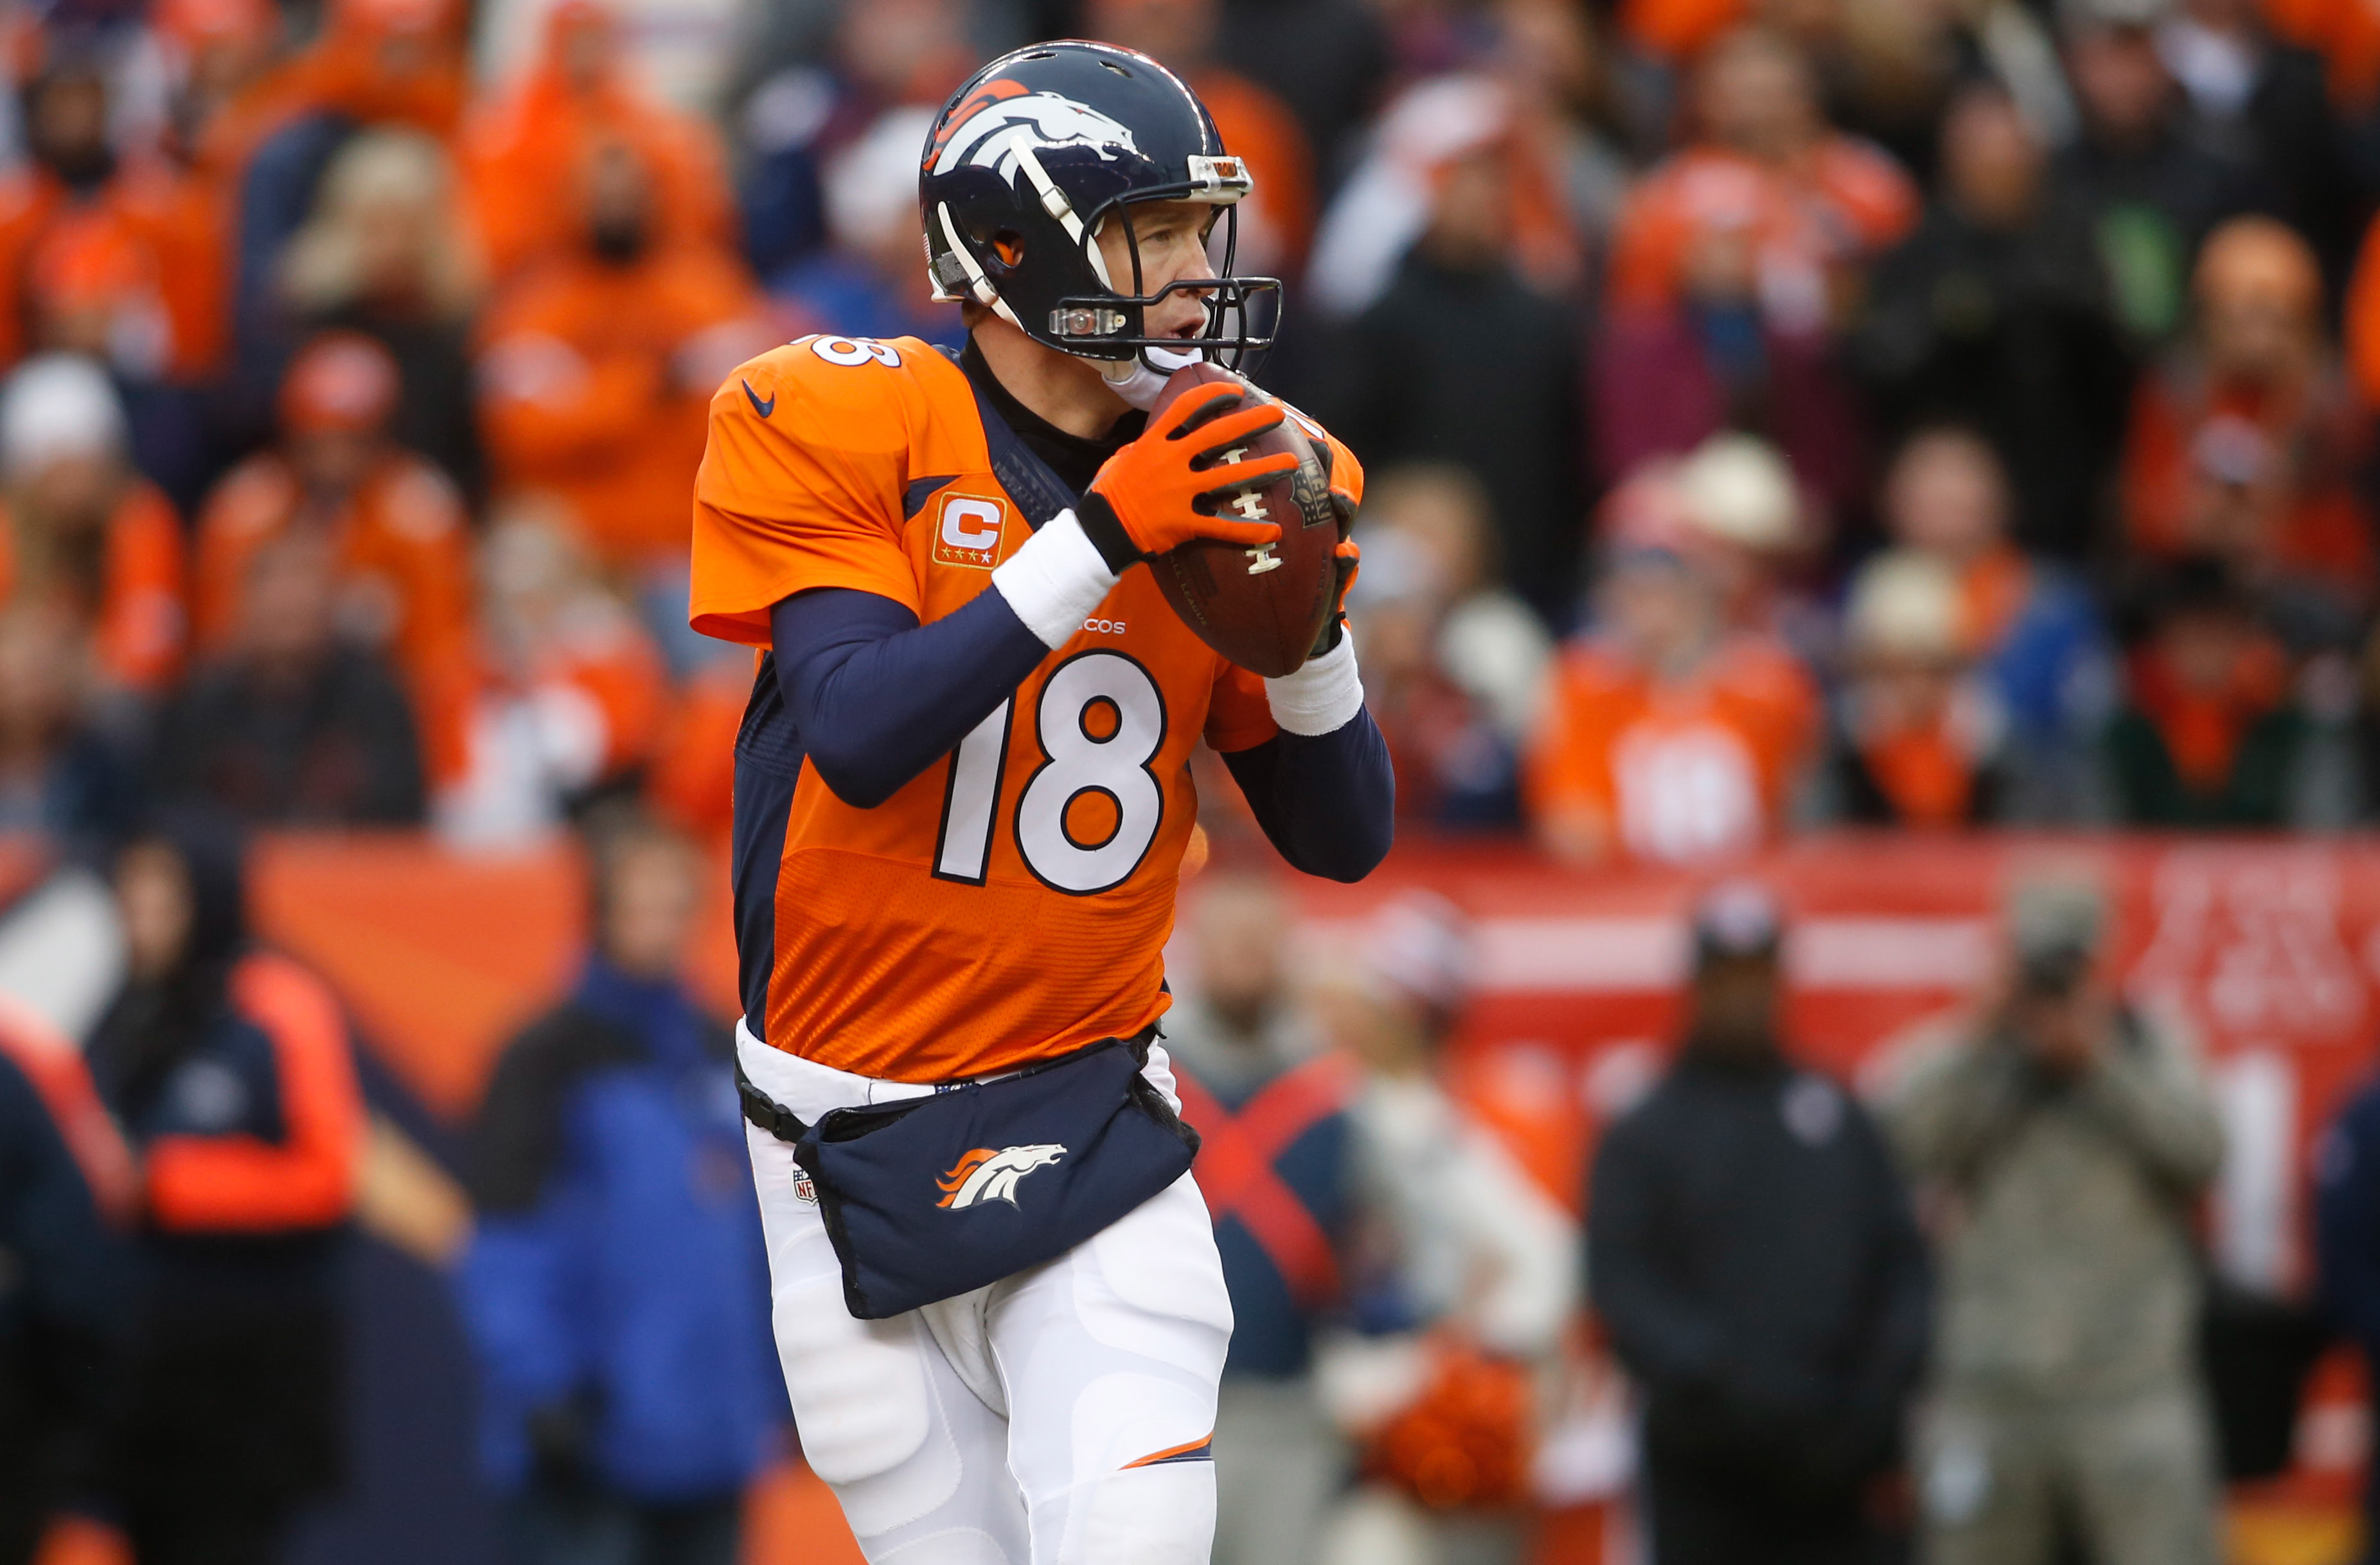 Peyton Manning working with Broncos to restructure contract, per report